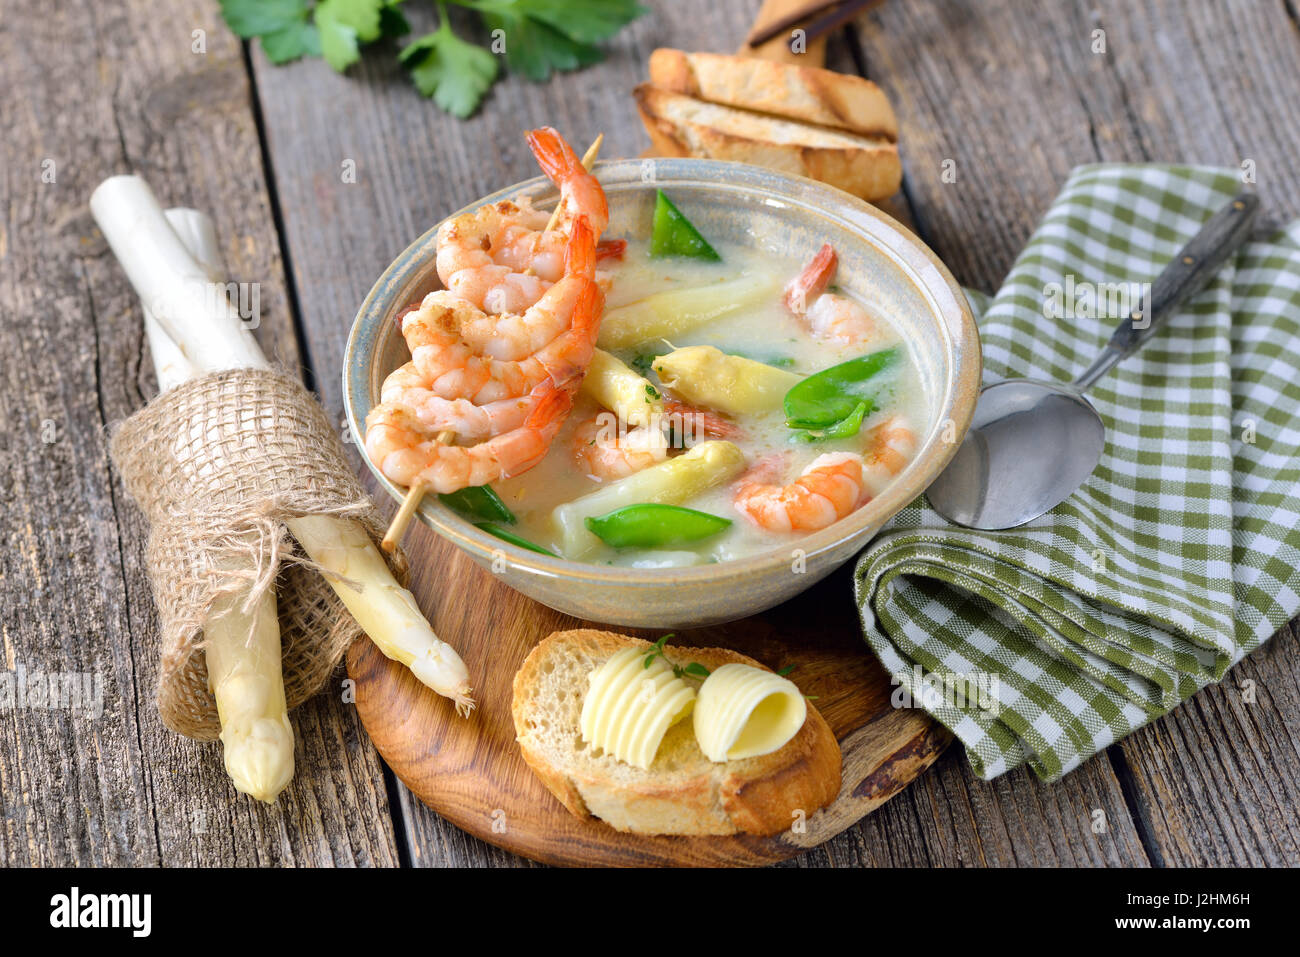 Cream of asparagus soup with fried prawns and snow peas, served with toasted baguette with butter rolls - Stock Image